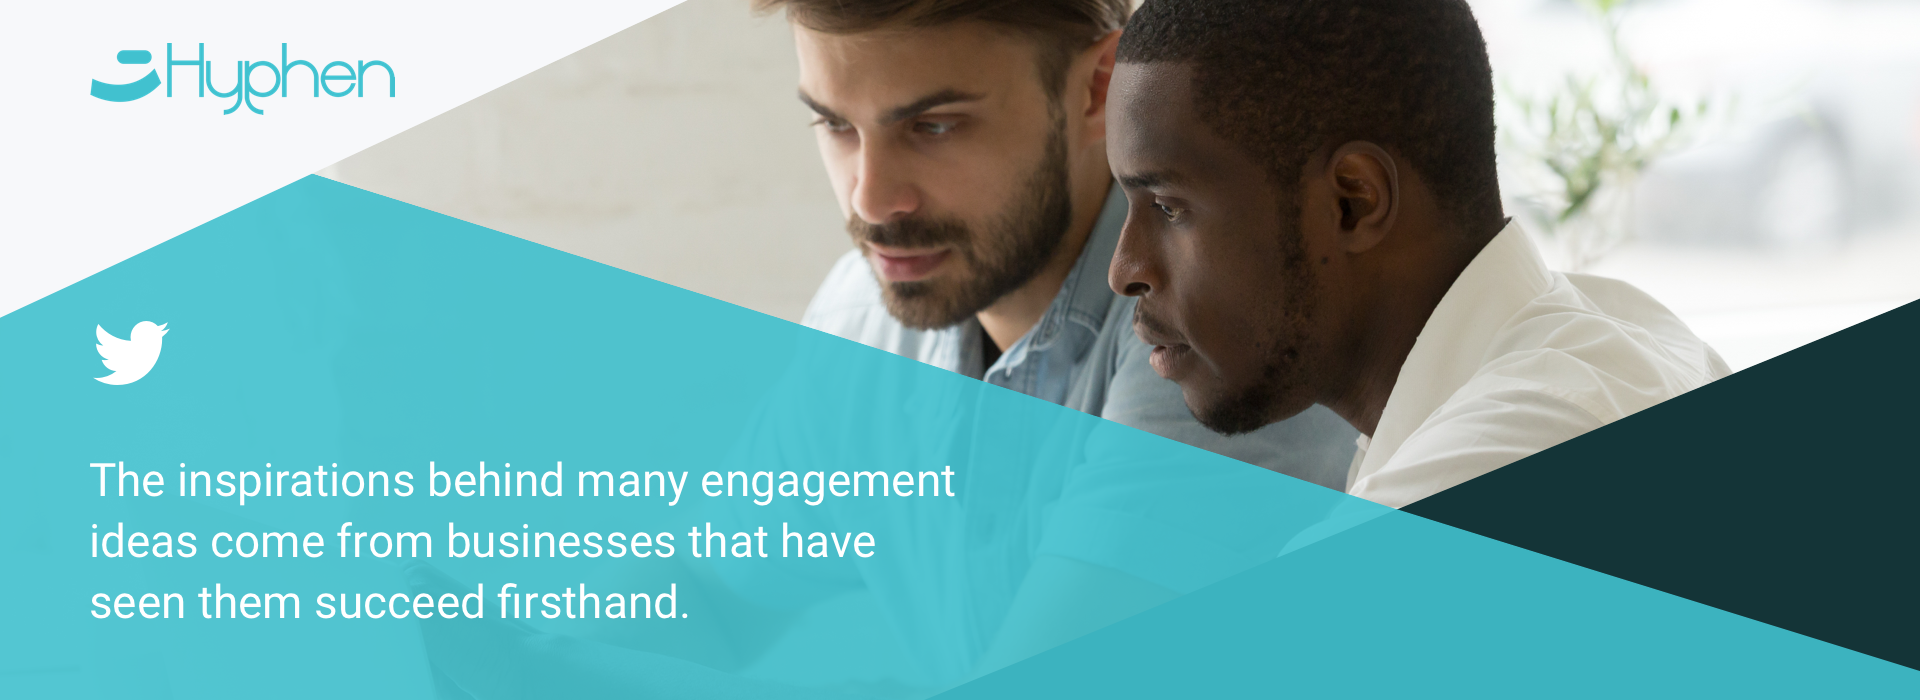 The inspirations behind many engagement ideas come from businesses that have seen them succeed firsthand.